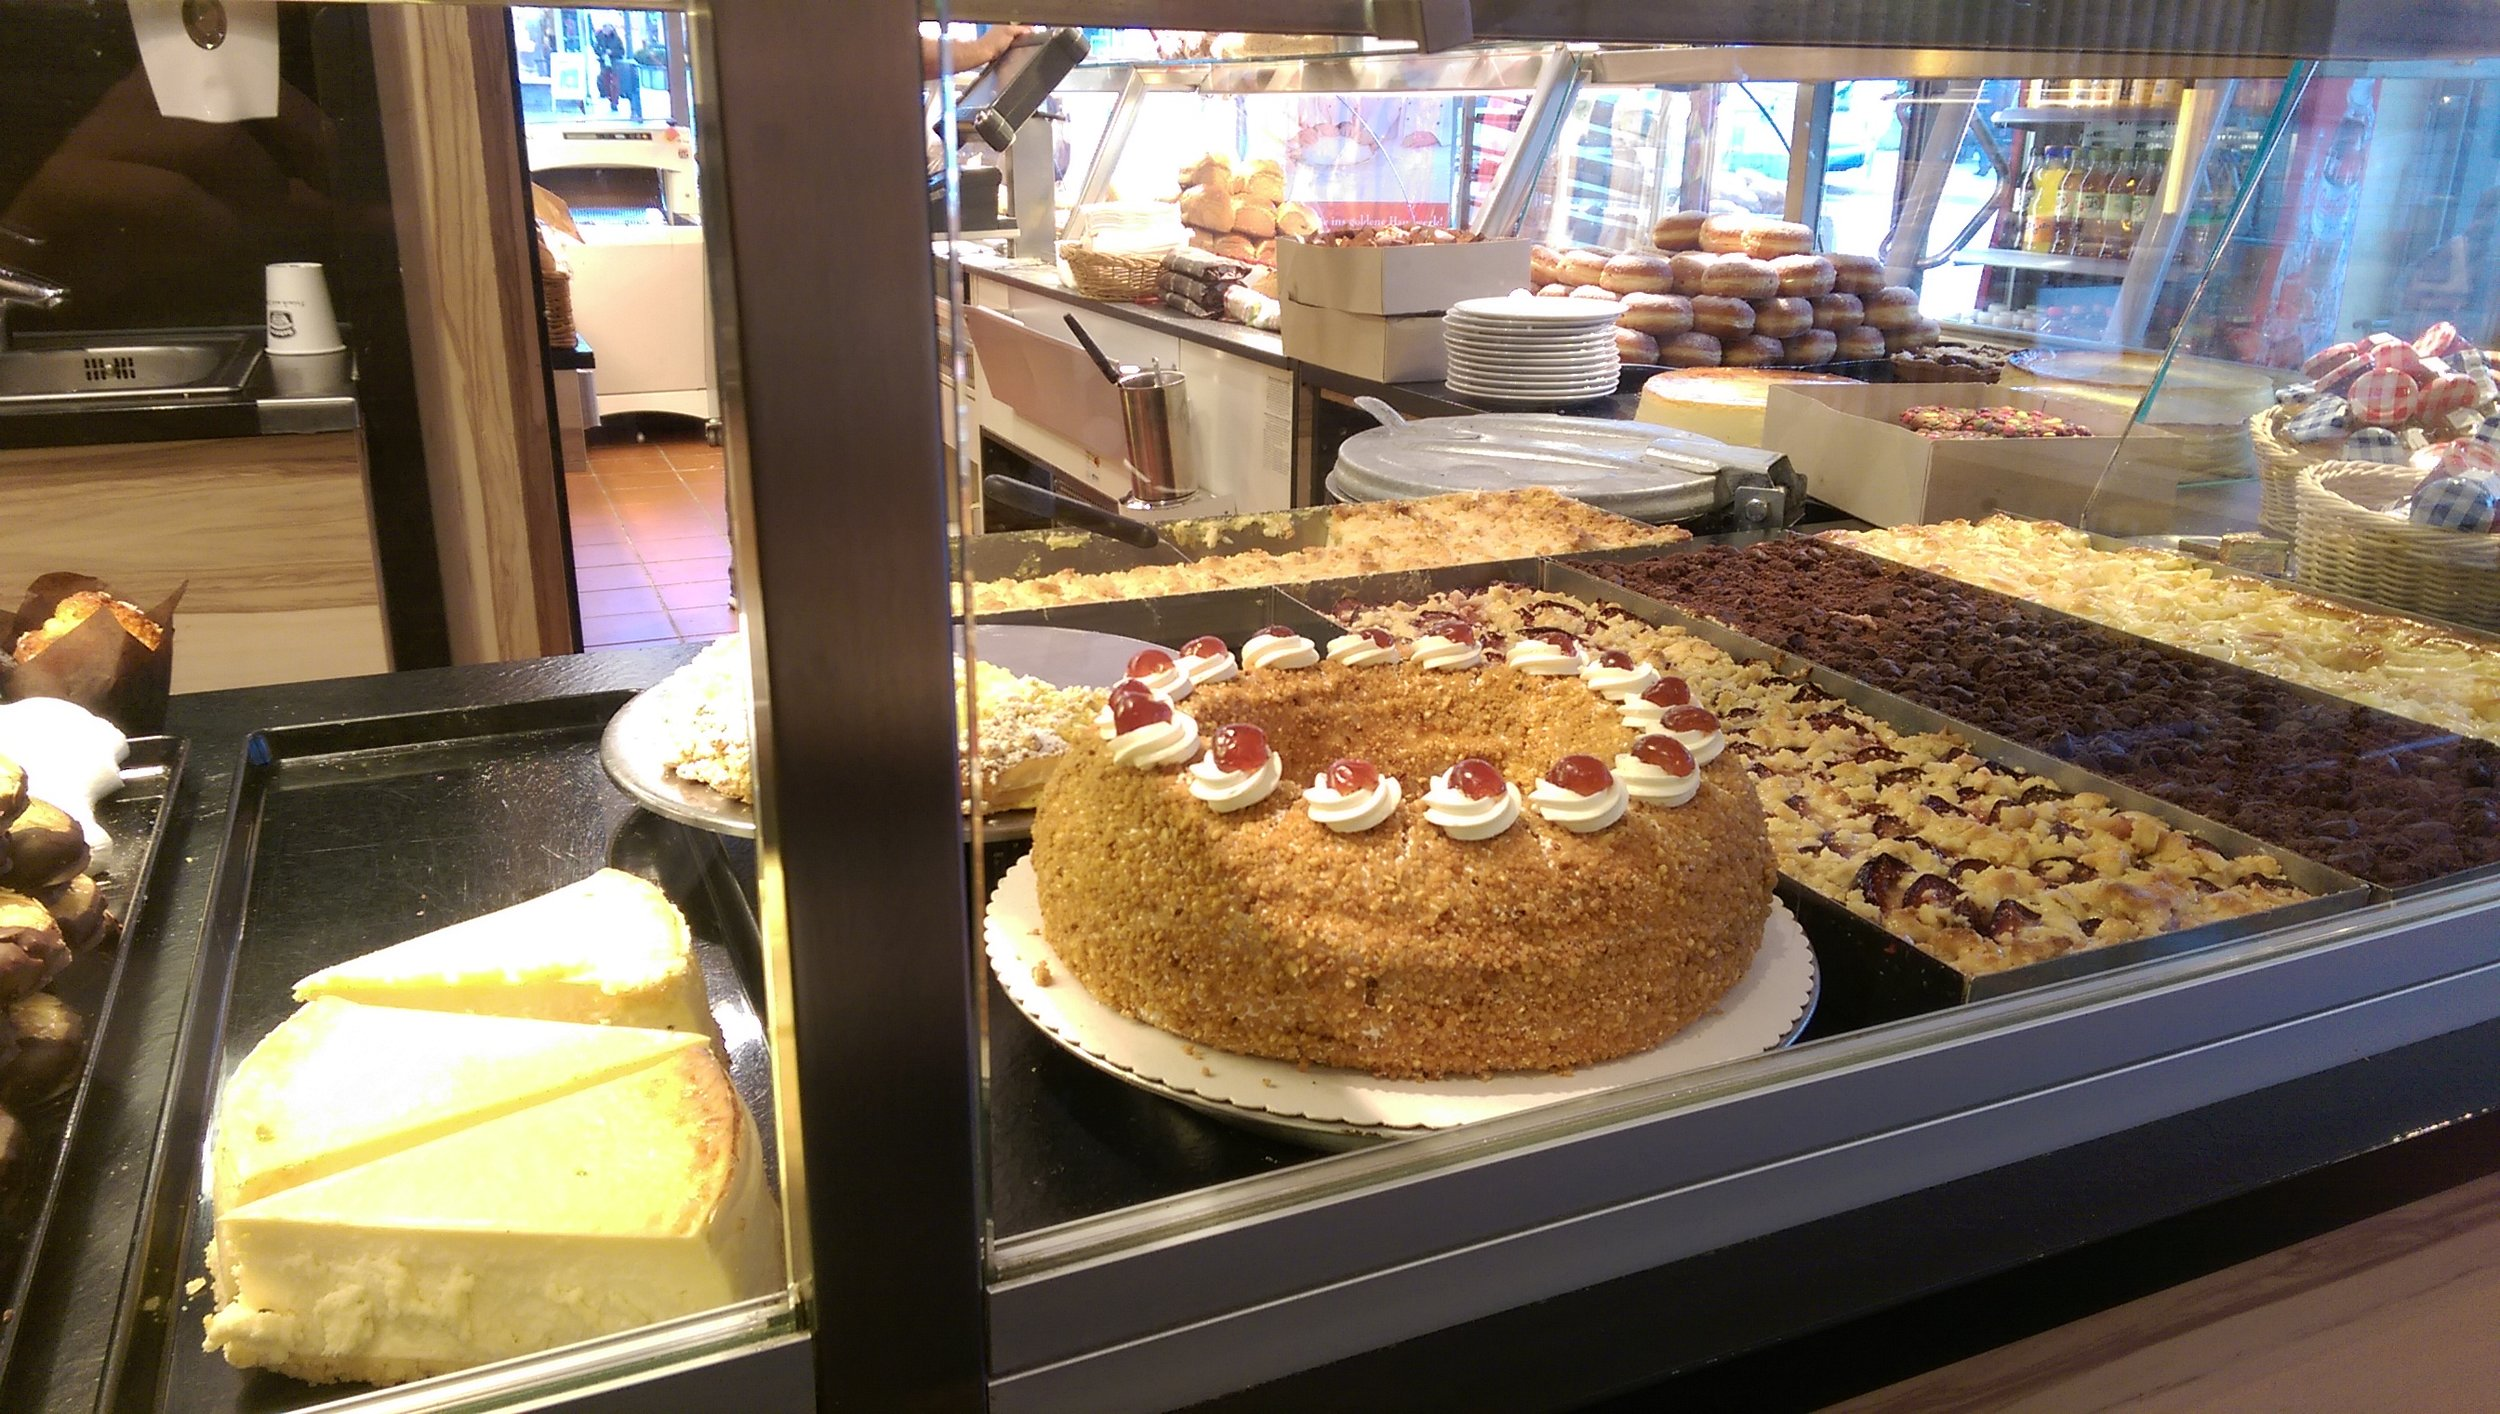 I learned that Germans are big on pastries and desserts